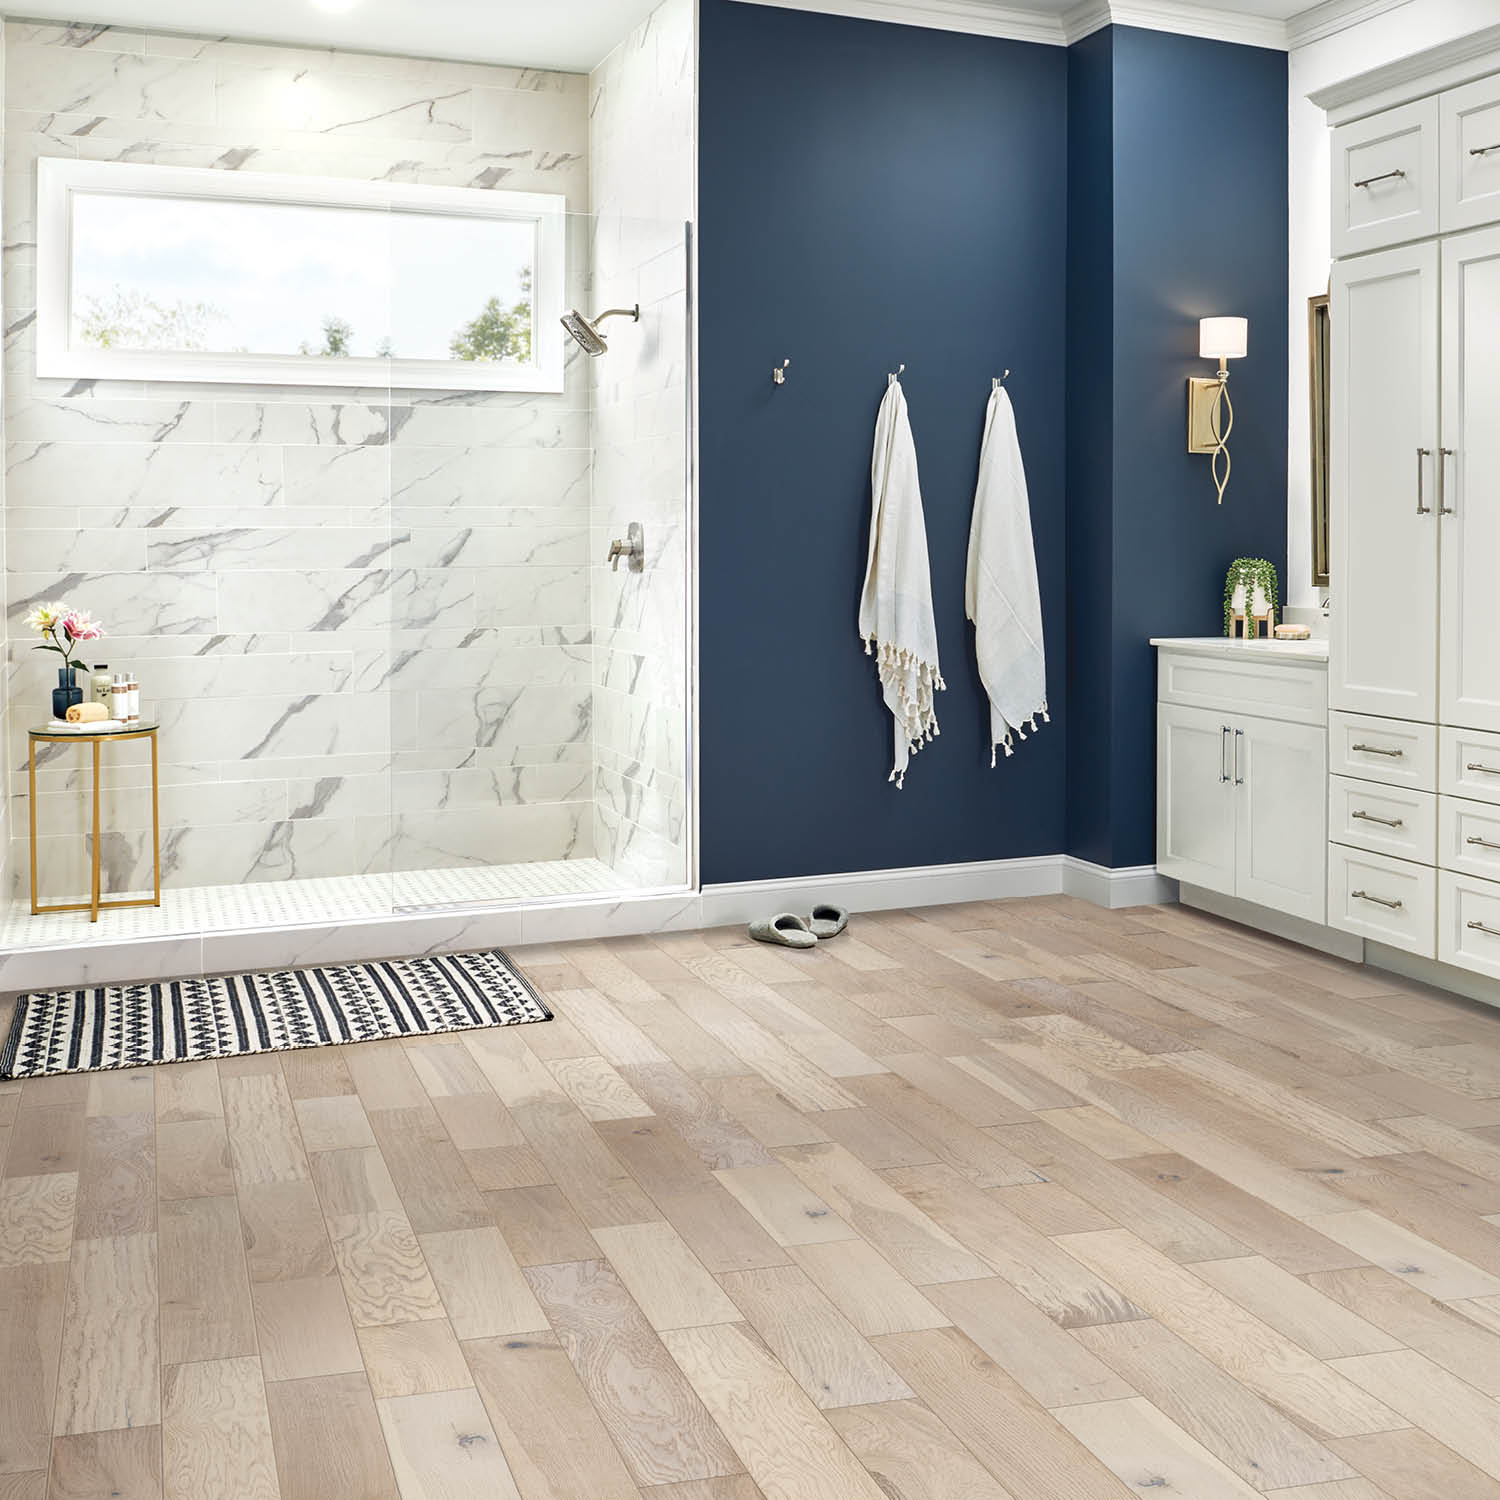 Waterproof flooring | Great Floors